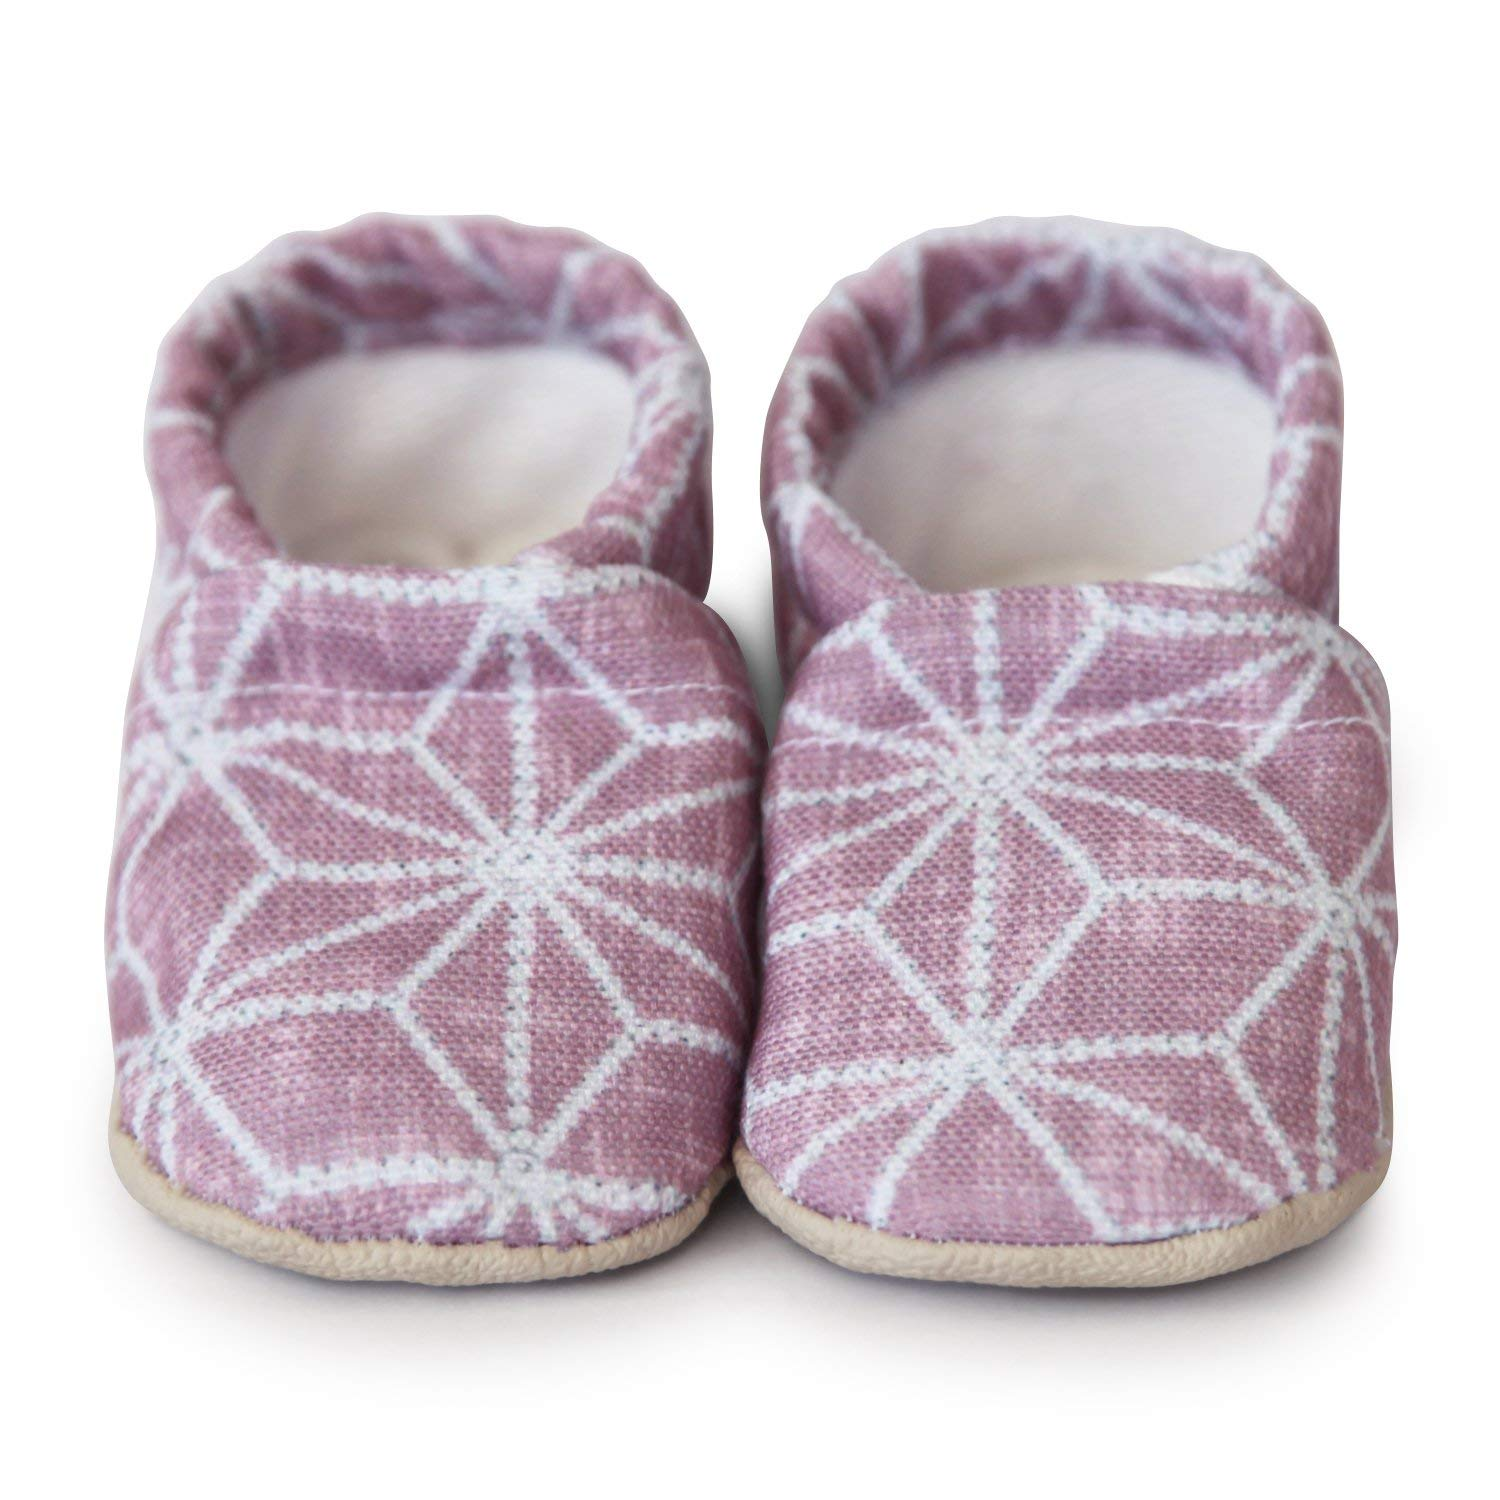 CLAMFEET Organic soft soled baby shoes, LILY